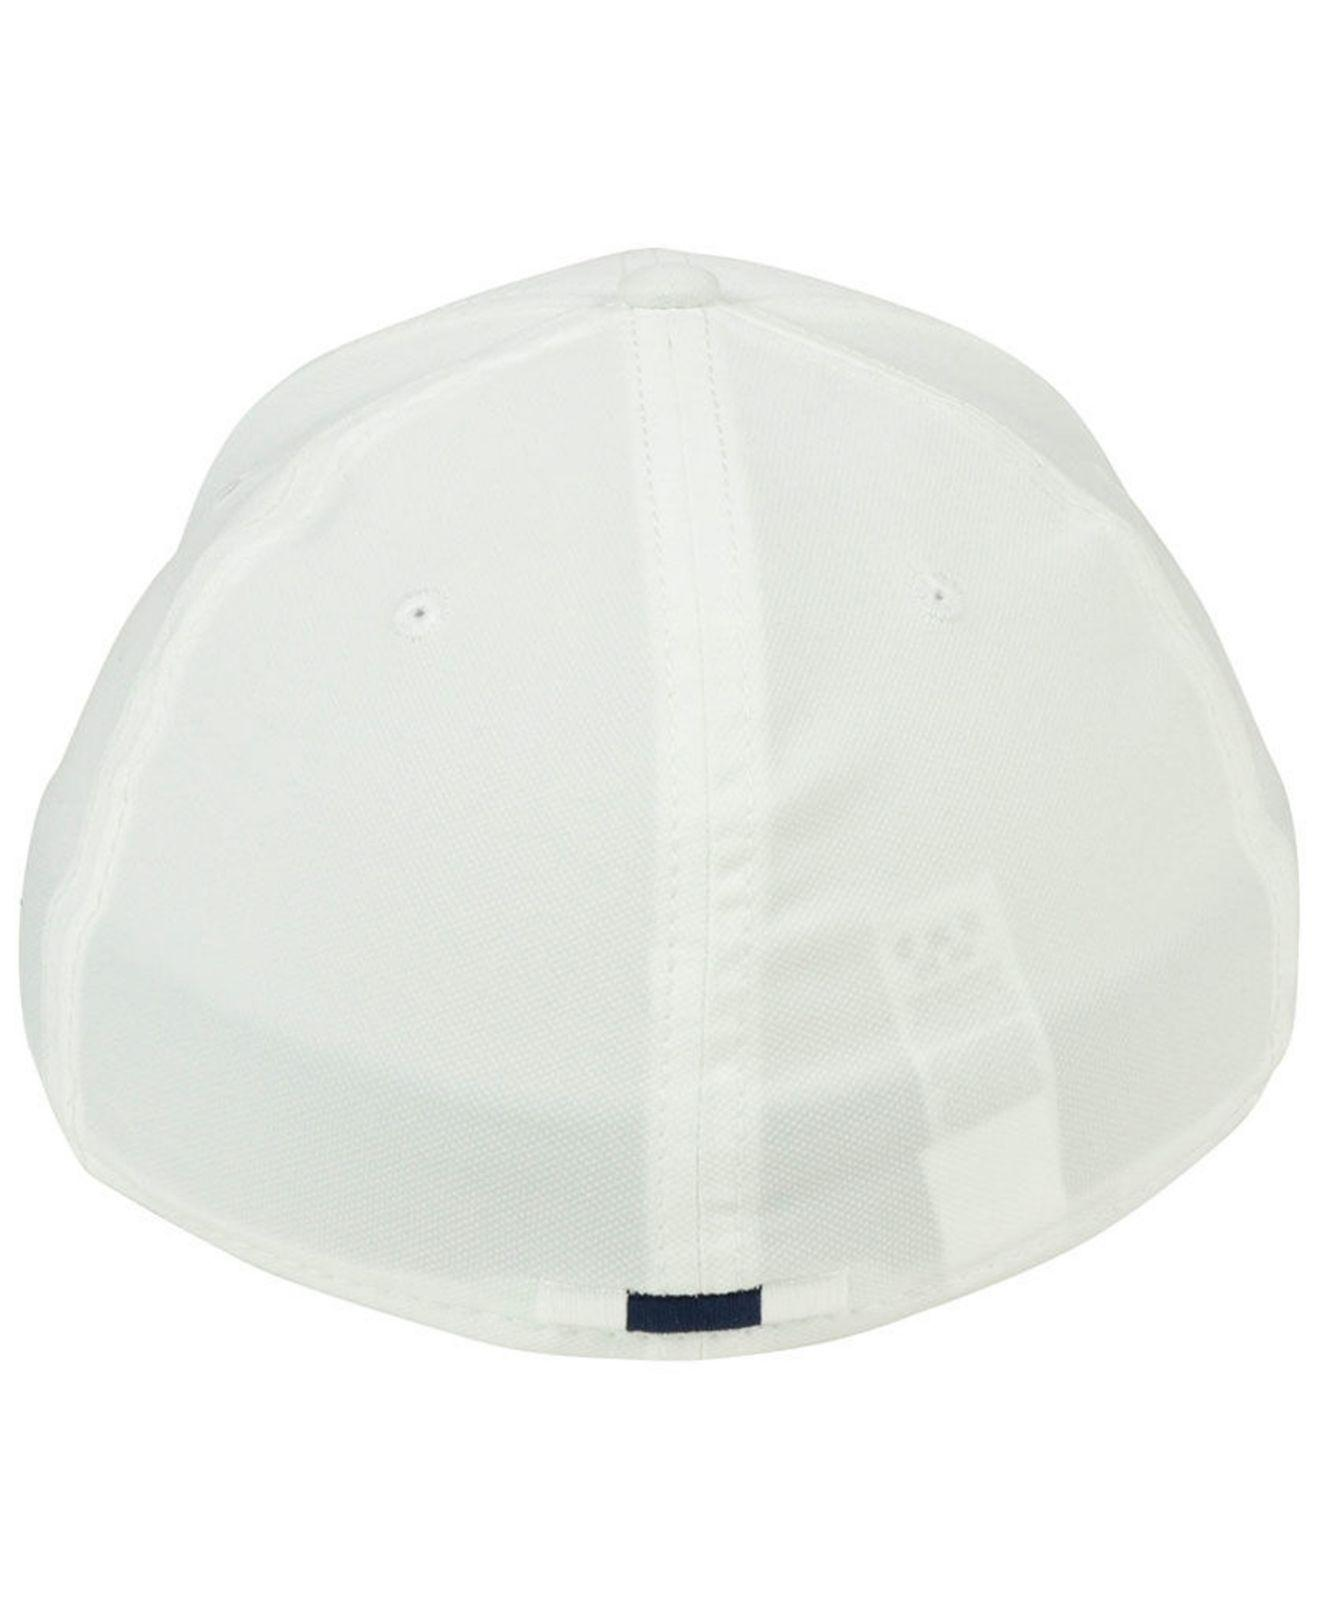 the latest 68b34 b21c1 Nike Penn State Nittany Lions Col Cap in White for Men - Lyst